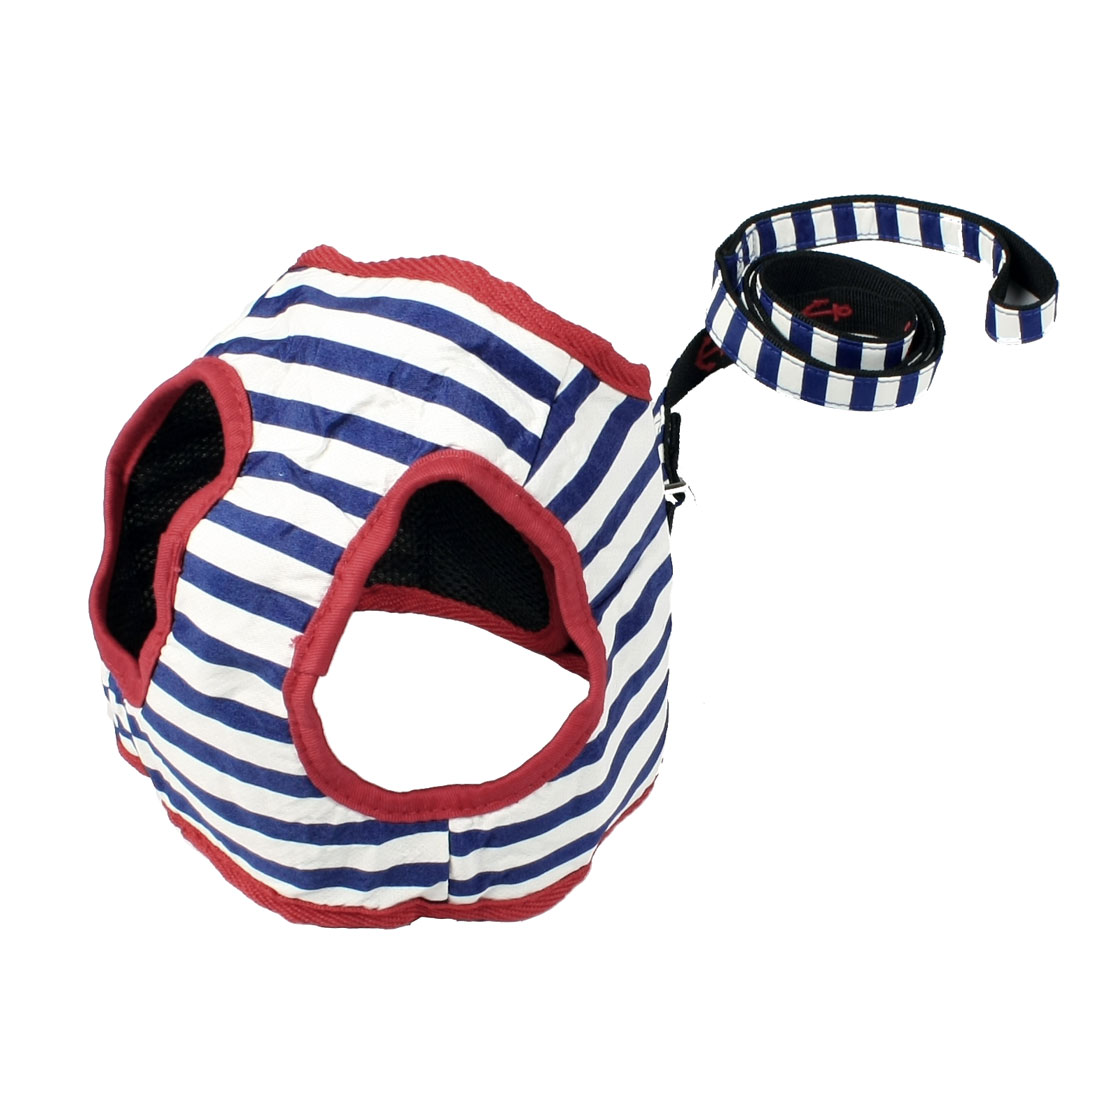 Blue White Stripes Printed Pet Dog Harness Leash Size 4